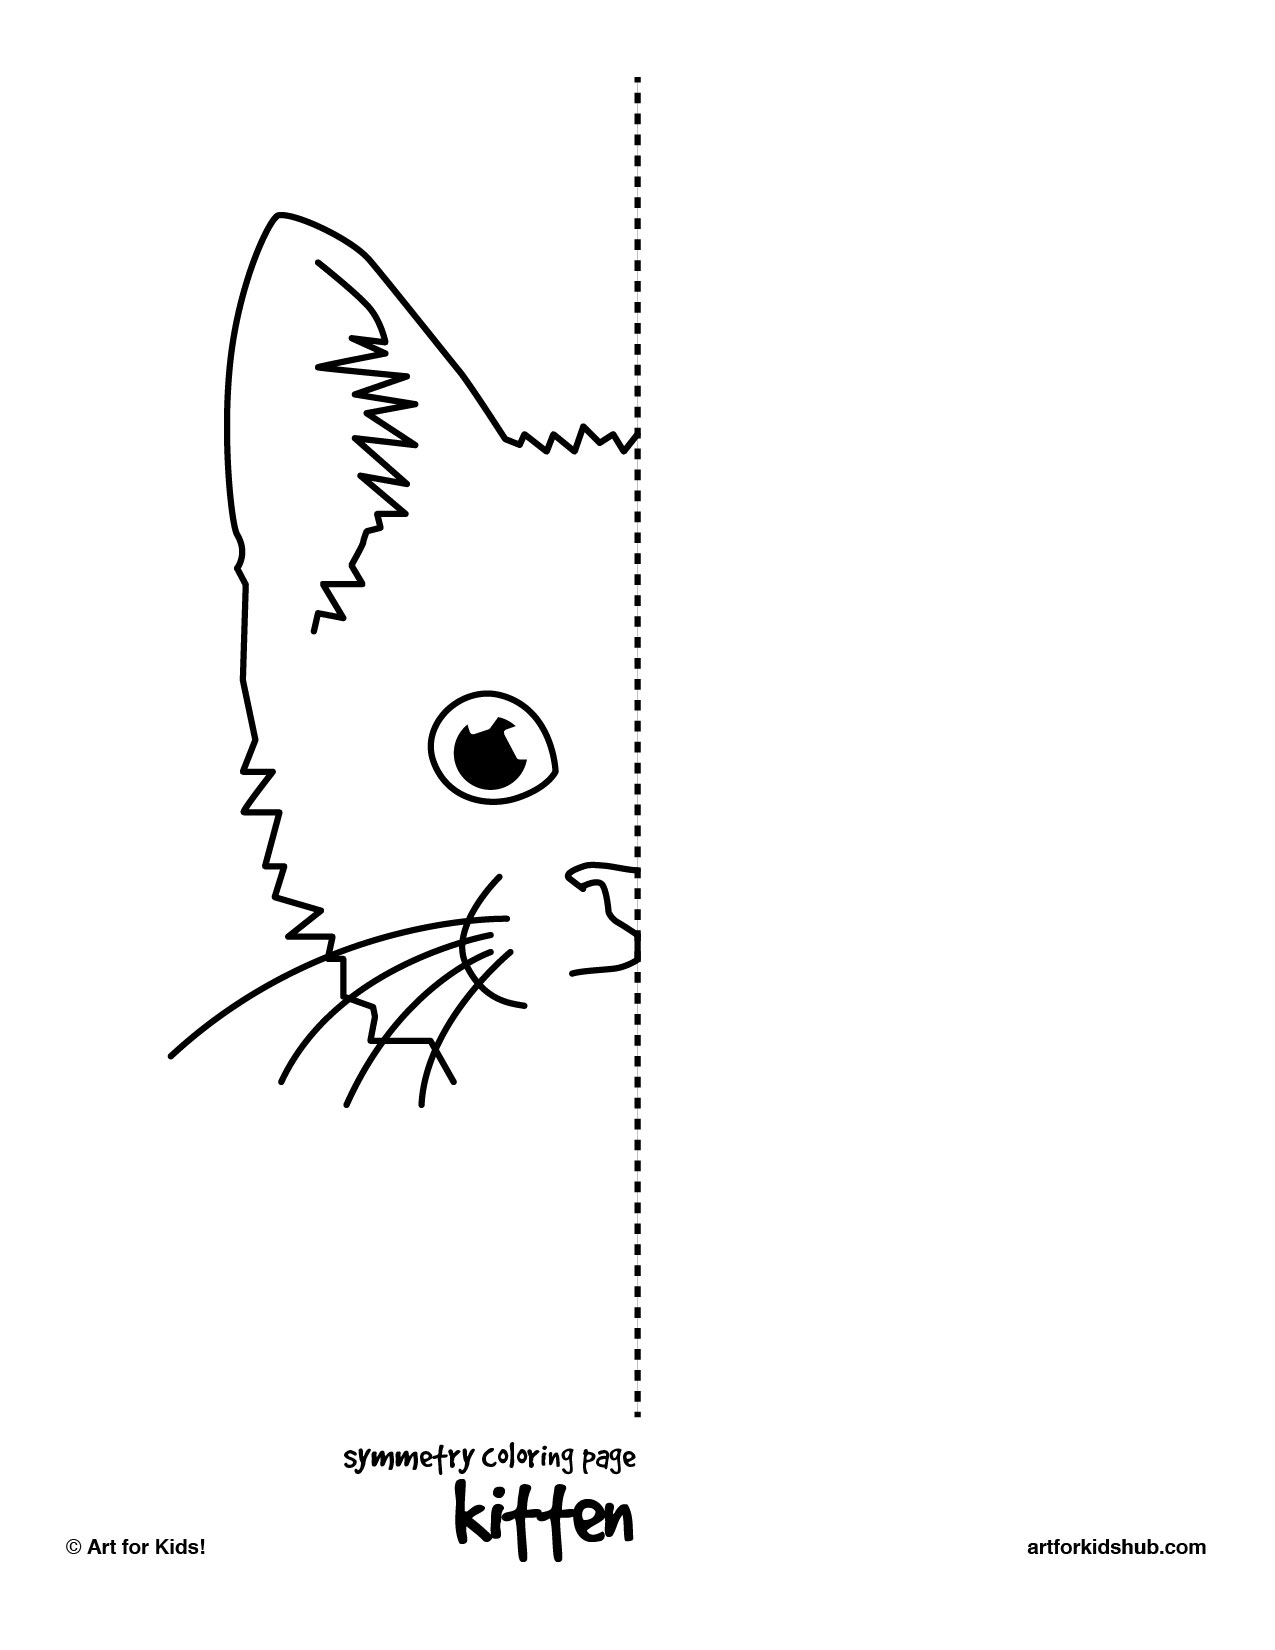 6 Best Images Of Symmetry Complete The Drawing Printables Symmetry Coloring Pages